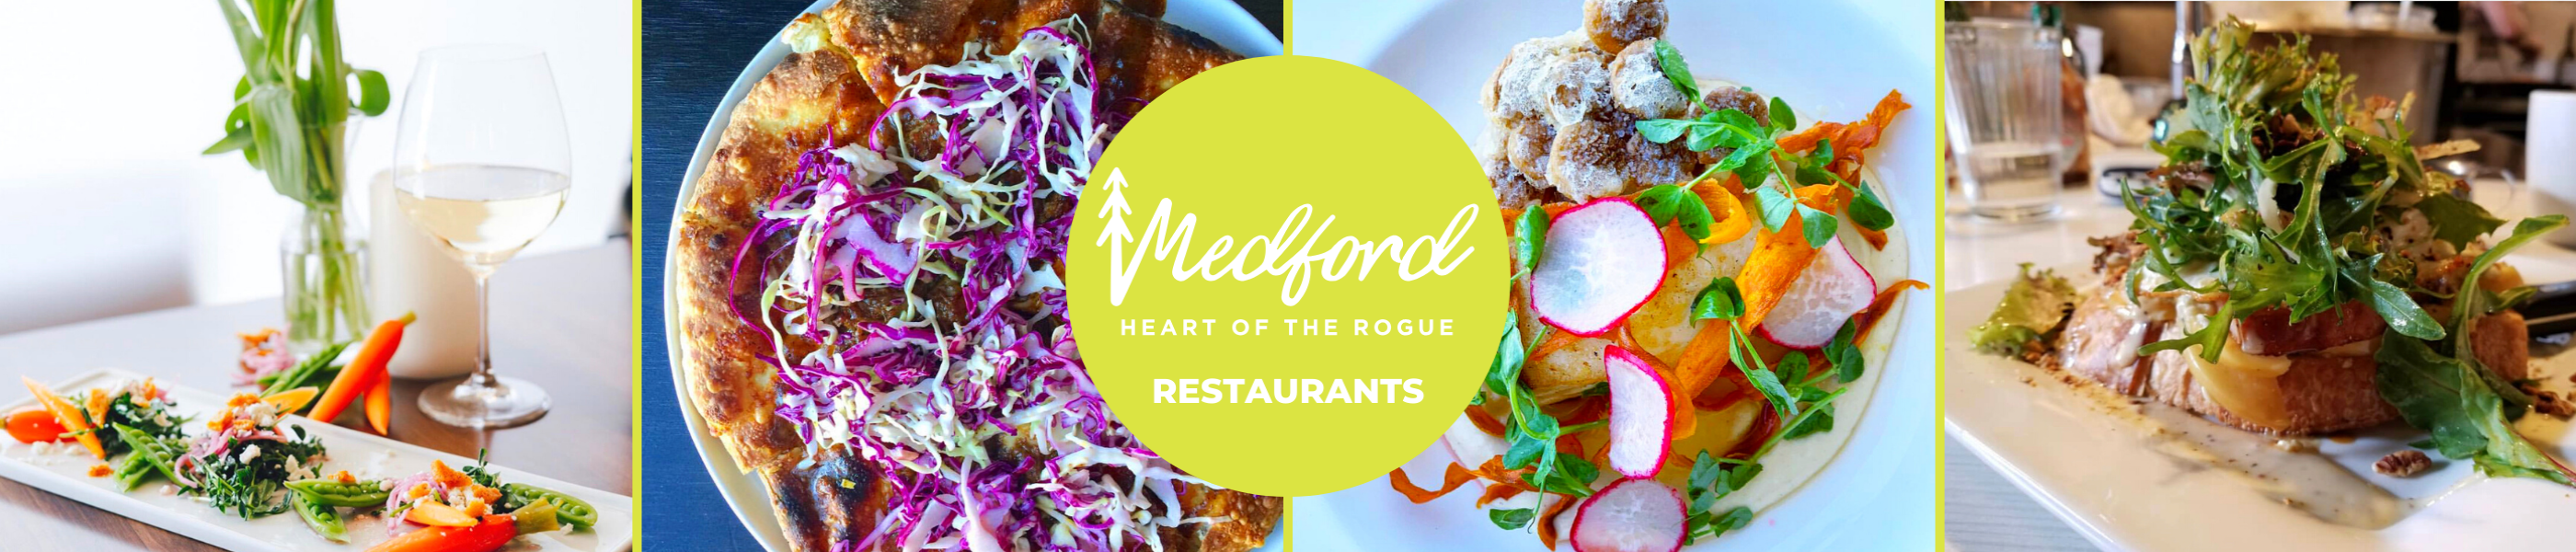 Restaurants, best food in Medford, places to eat, things to do in Medford, heart of the rogue, downtown food